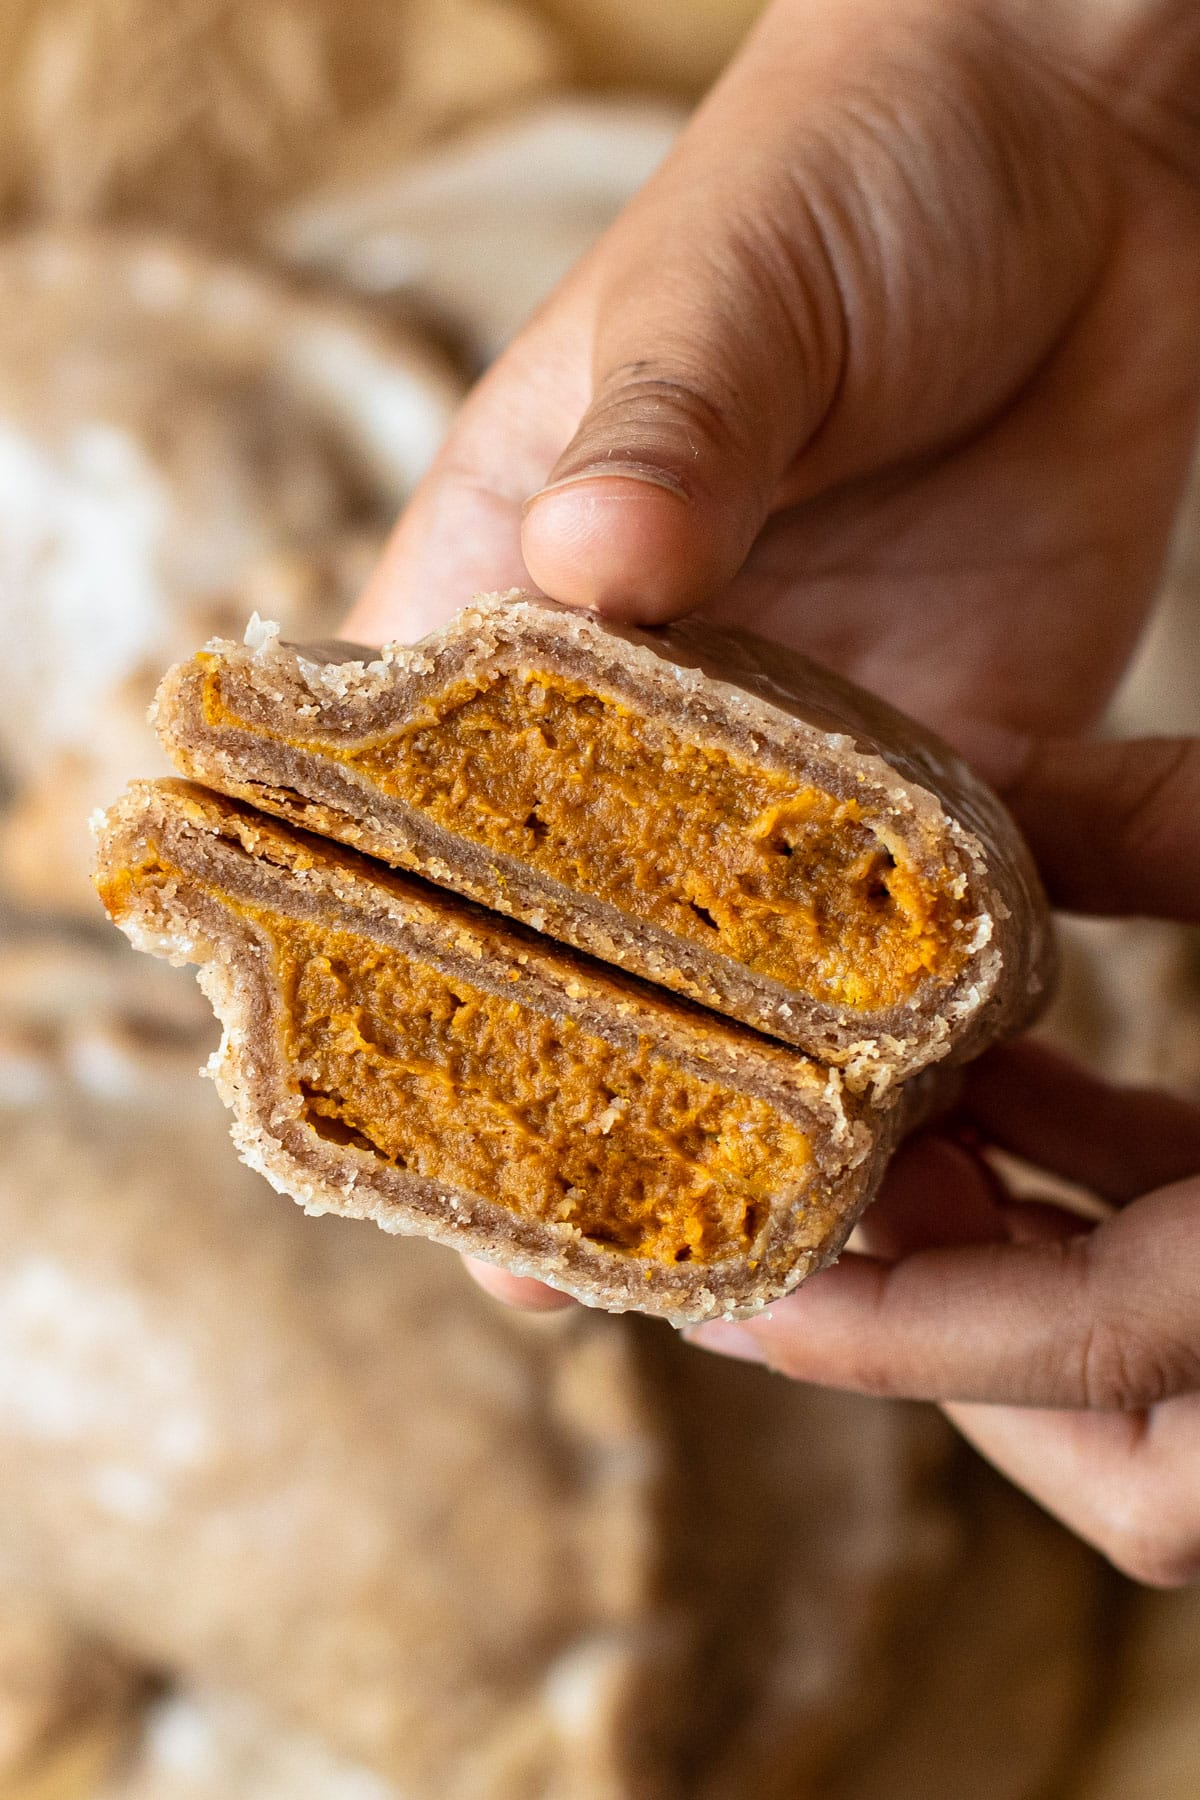 A pumpkin pasty cut in half to reveal a creamy filling.